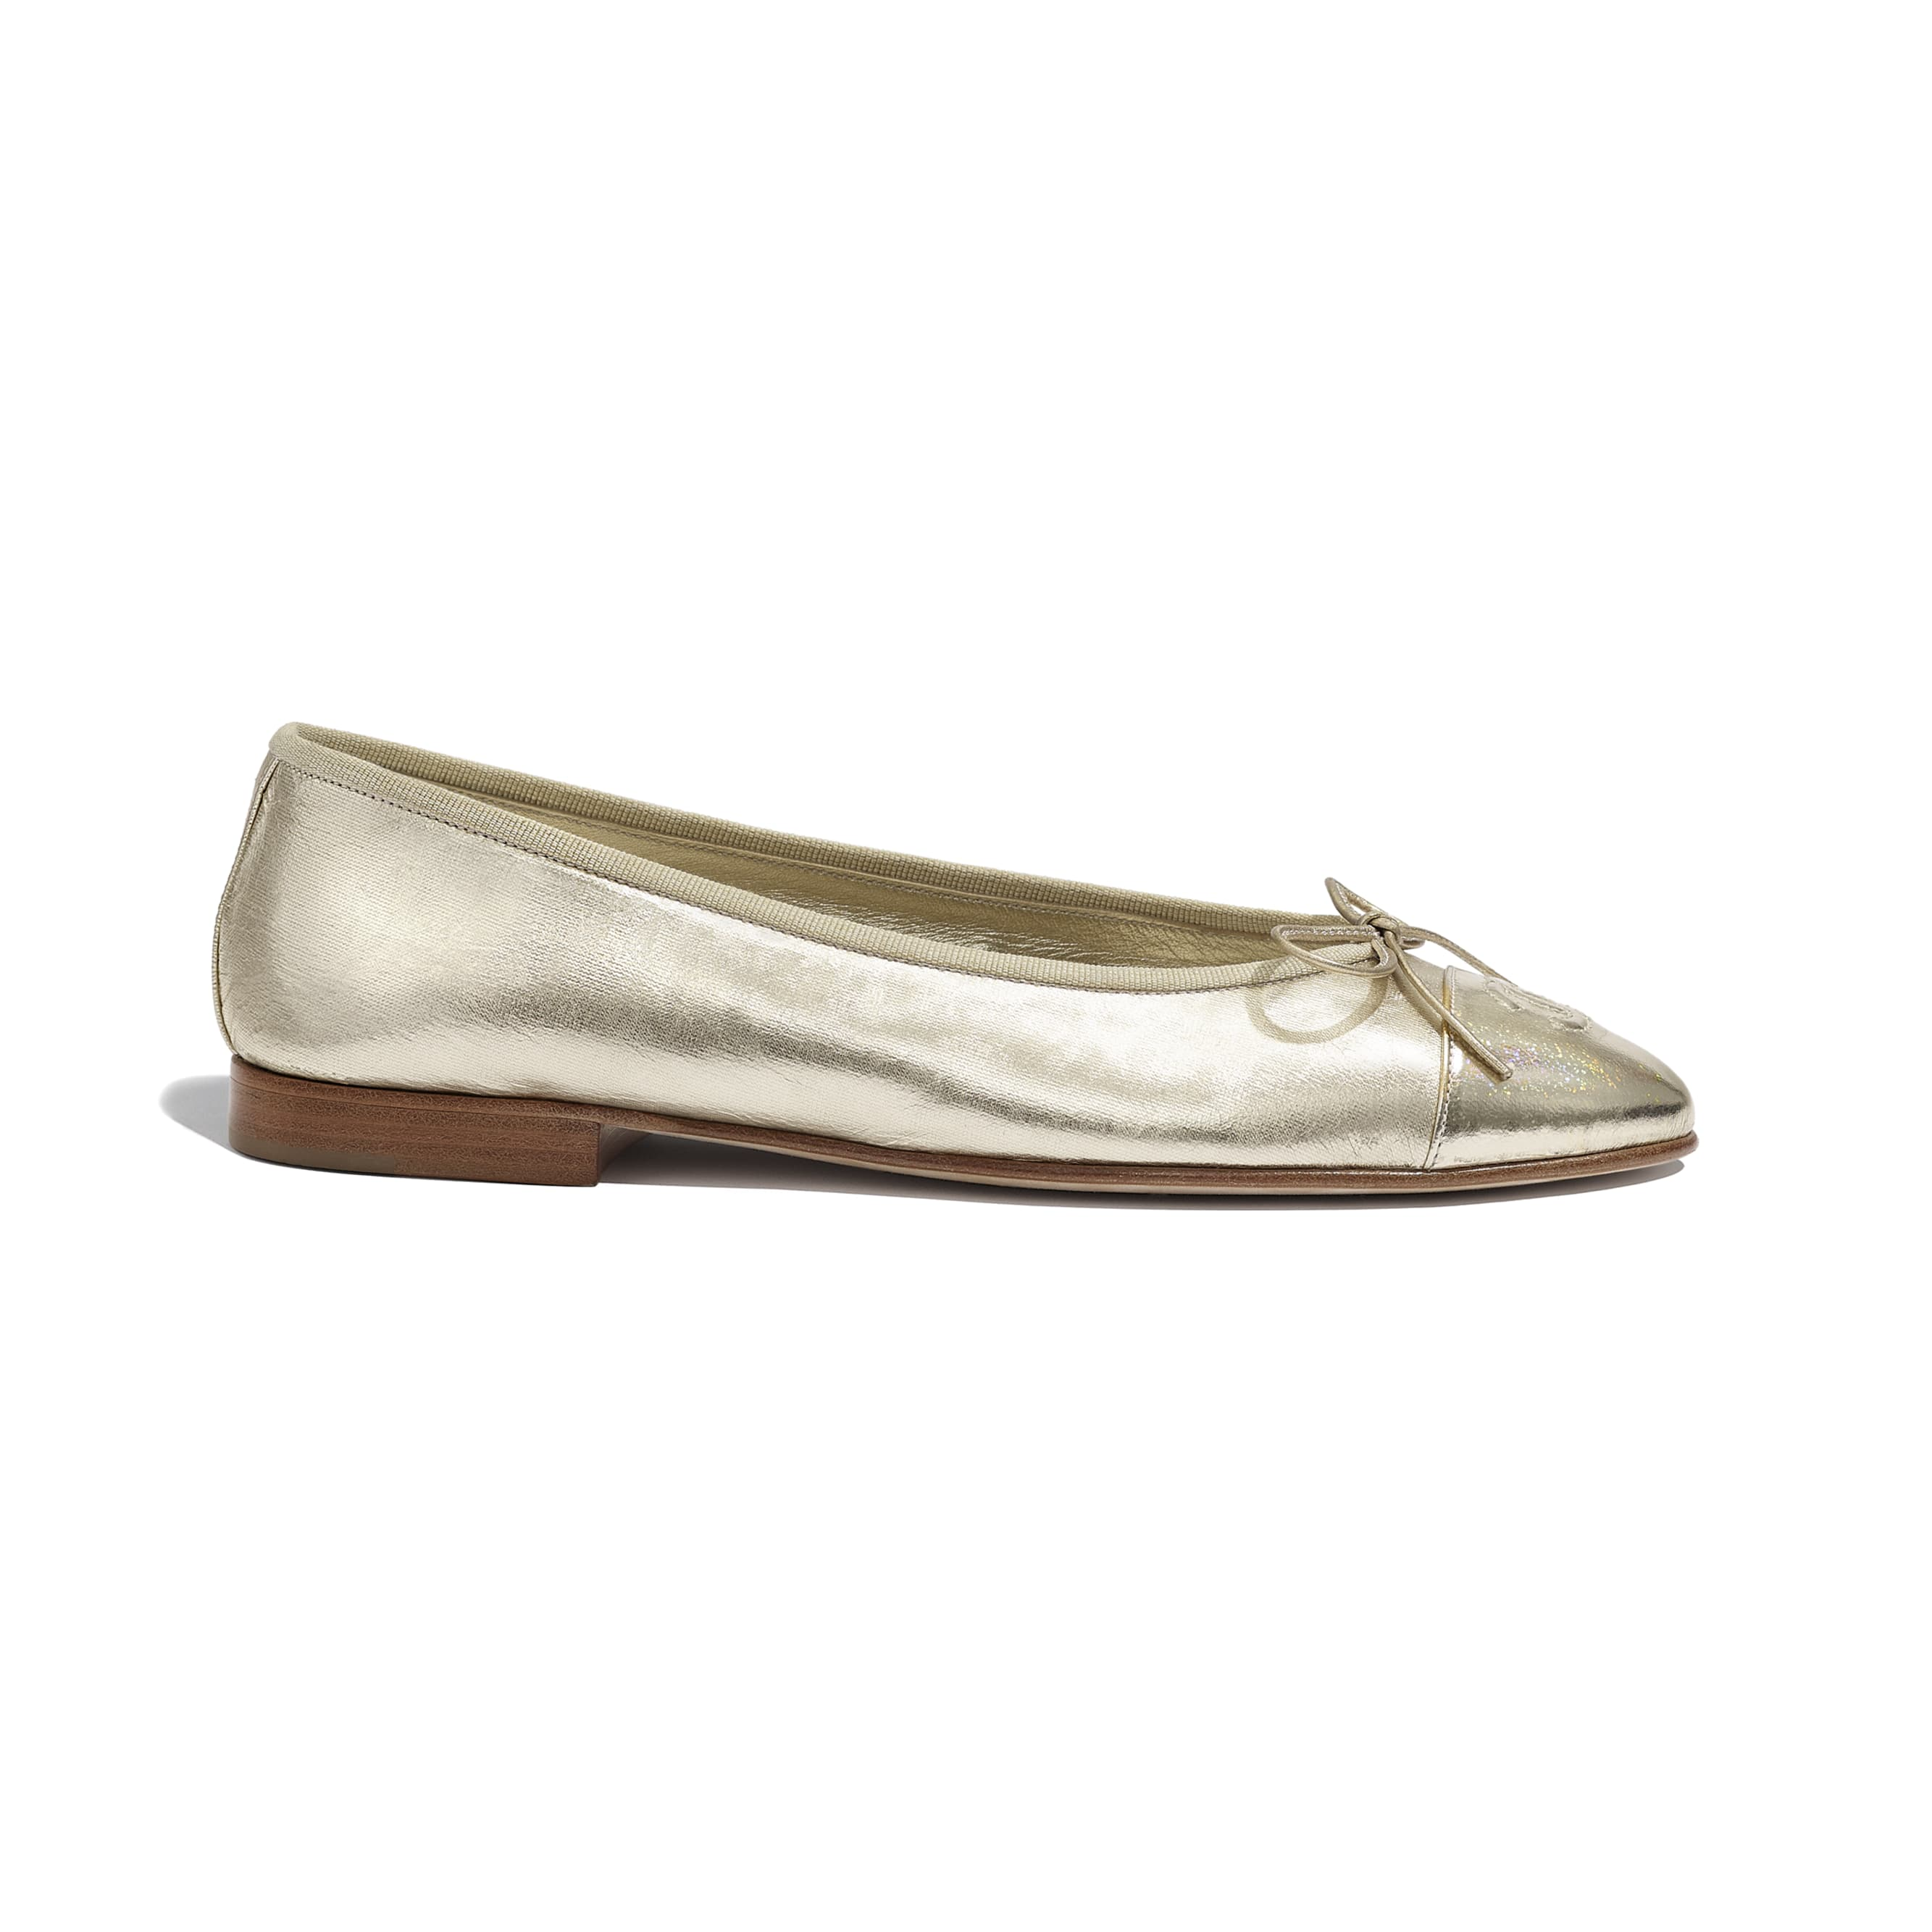 Flats - Gold - Metallic Goatskin - CHANEL - Default view - see standard sized version